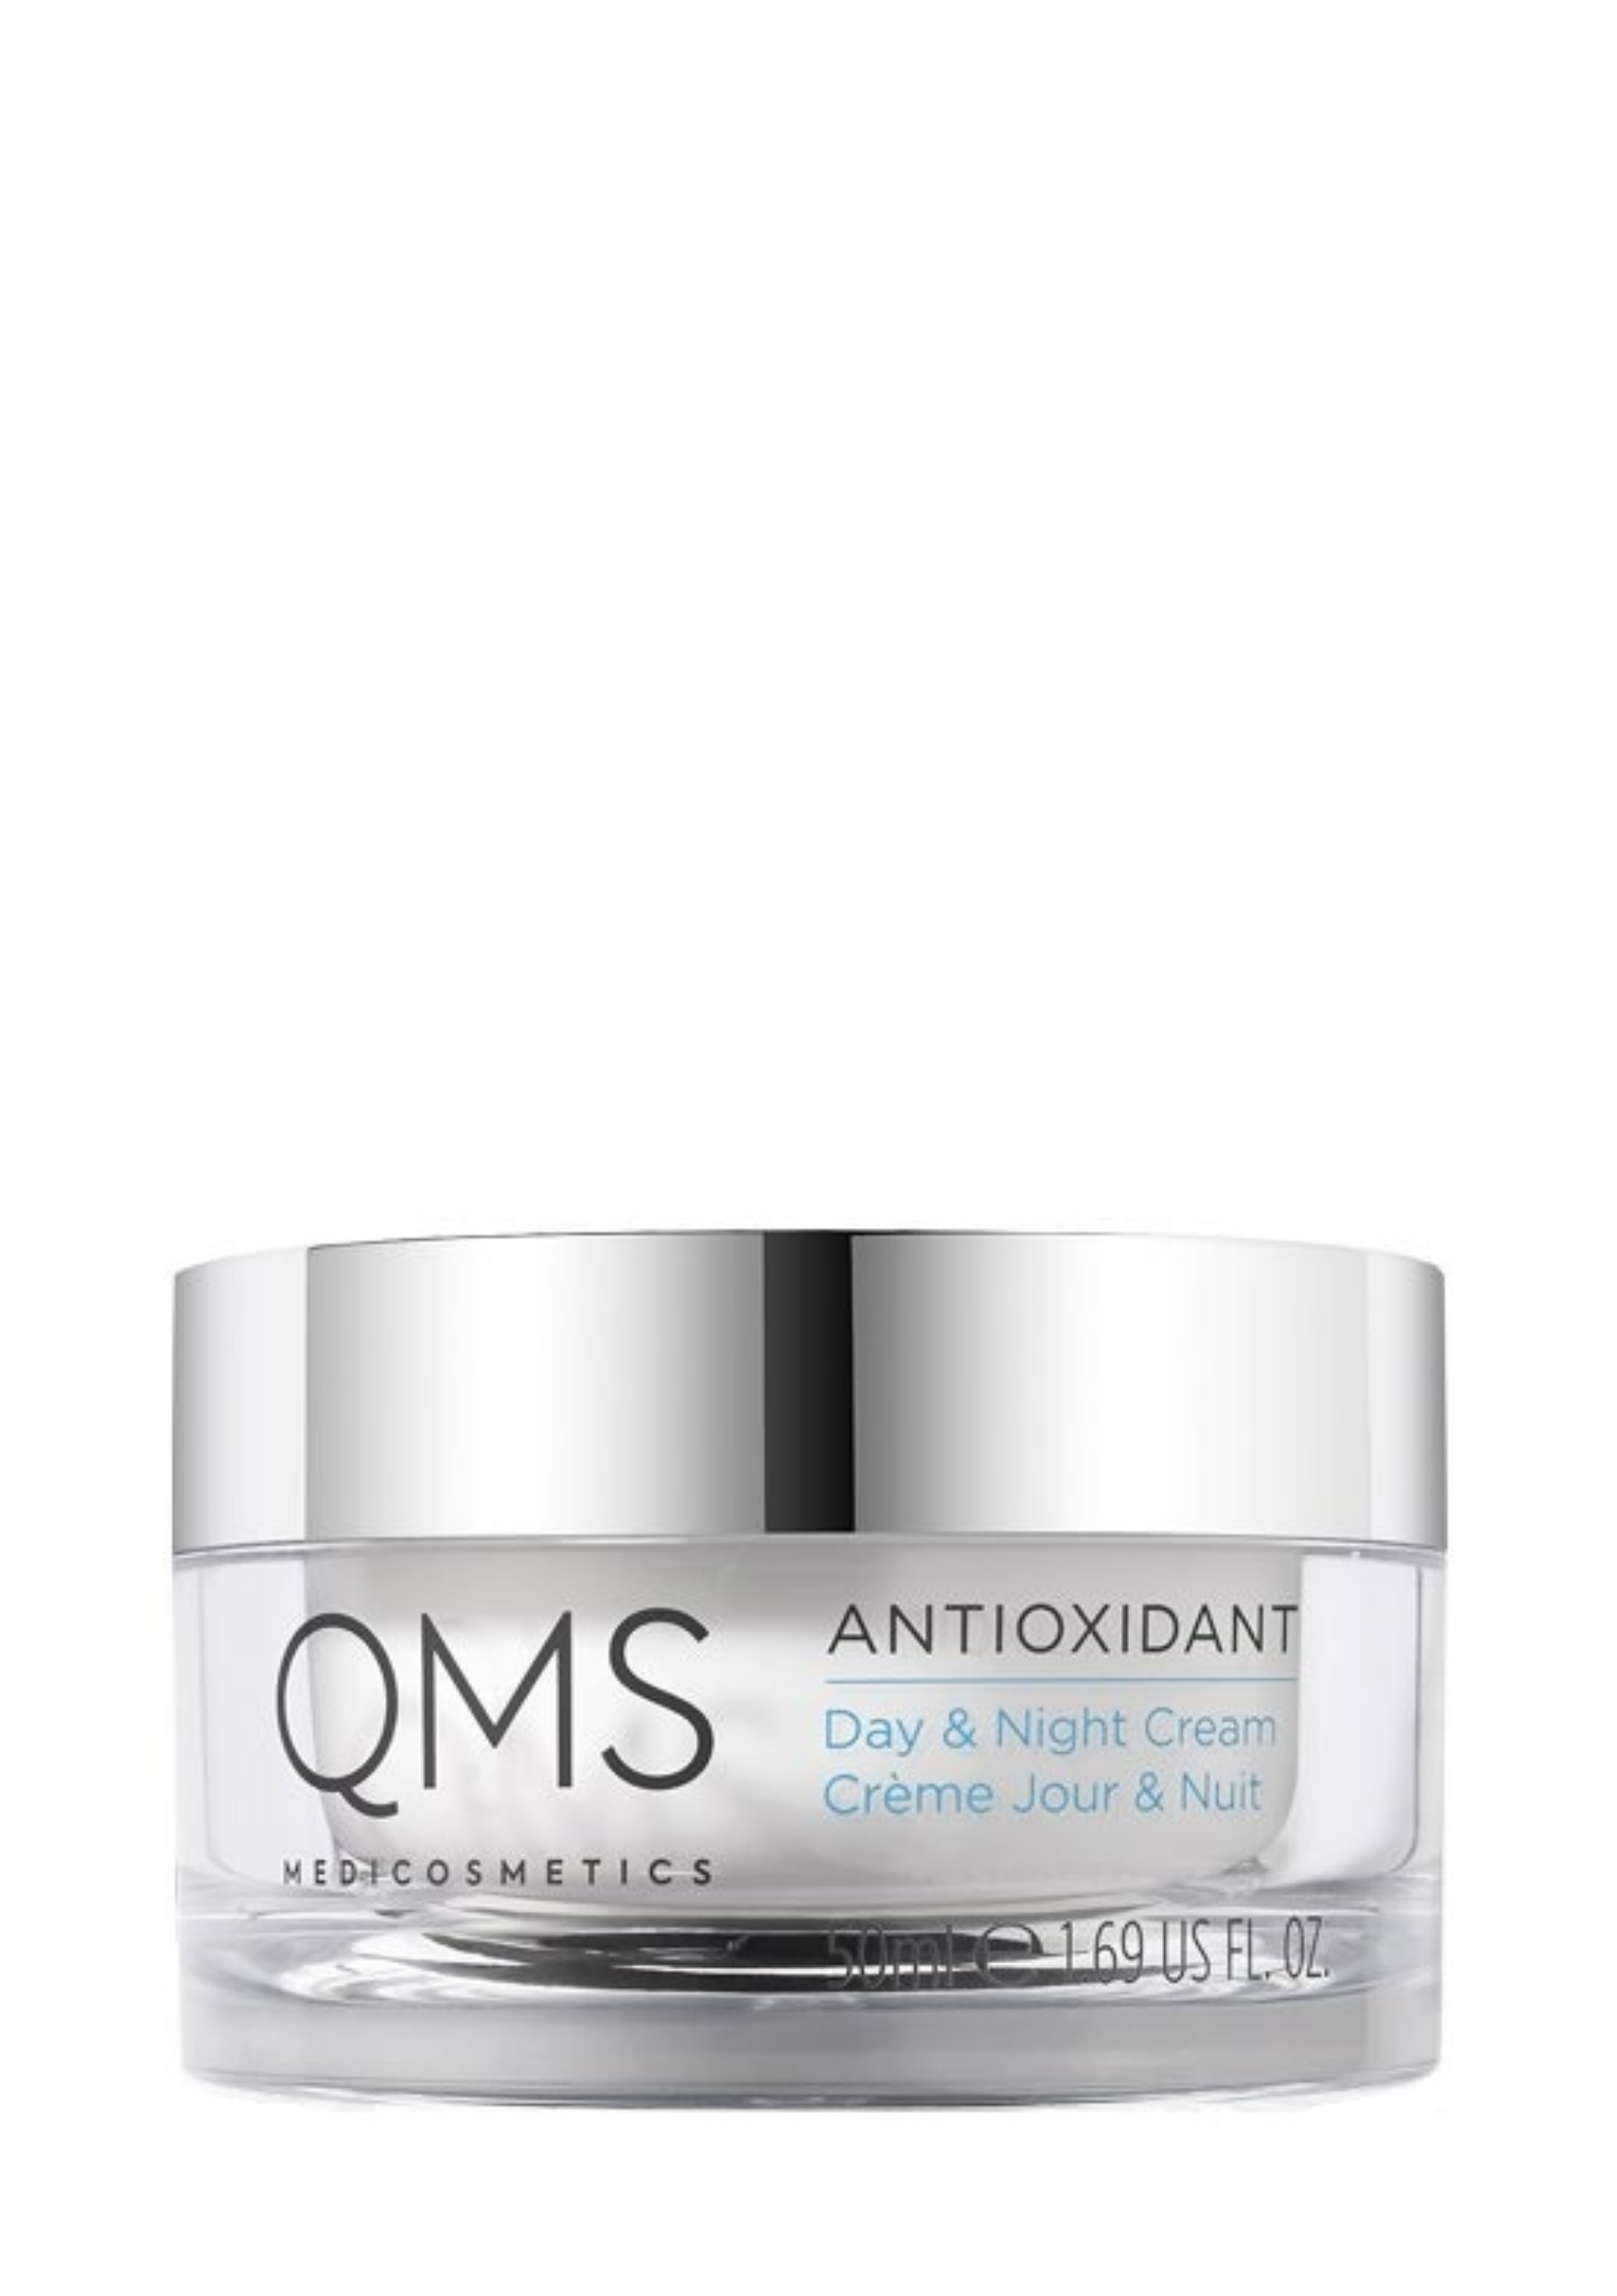 QMS®Antioxidant Day & Night Cream